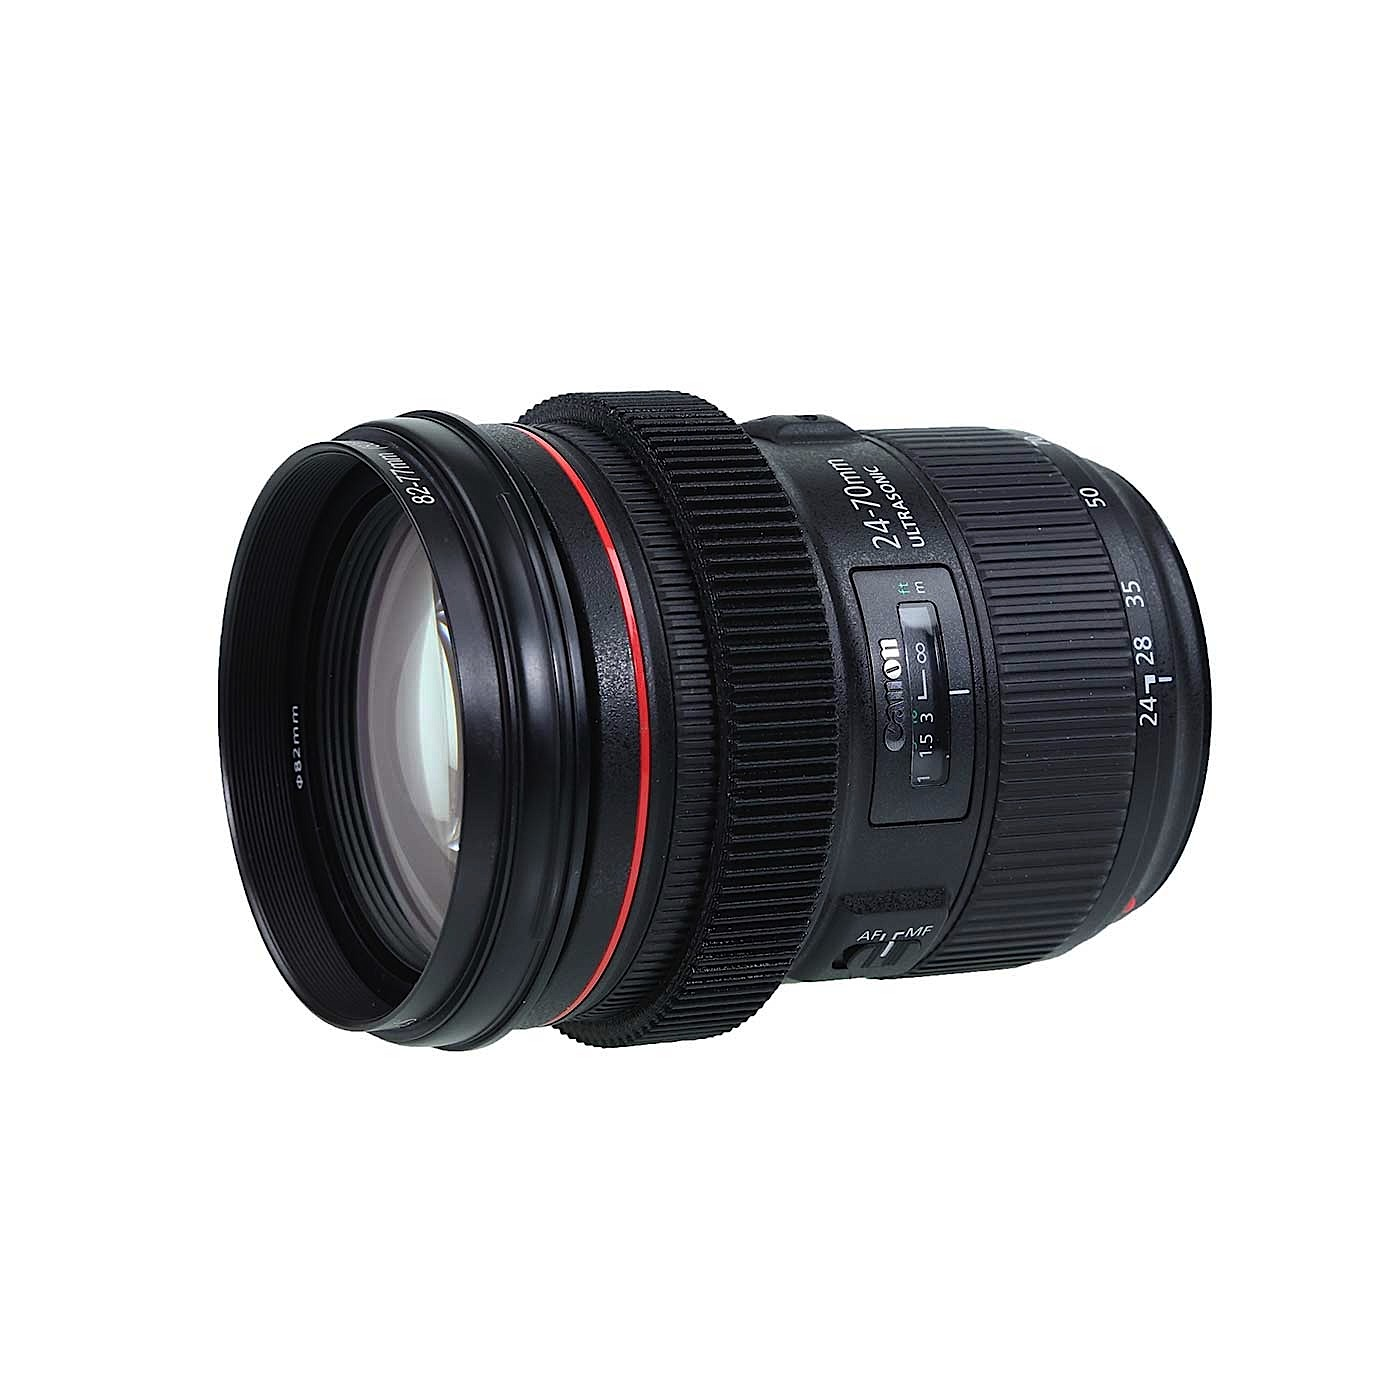 Canon EF 24-70mm MARK II Still Photo Zoom Lens